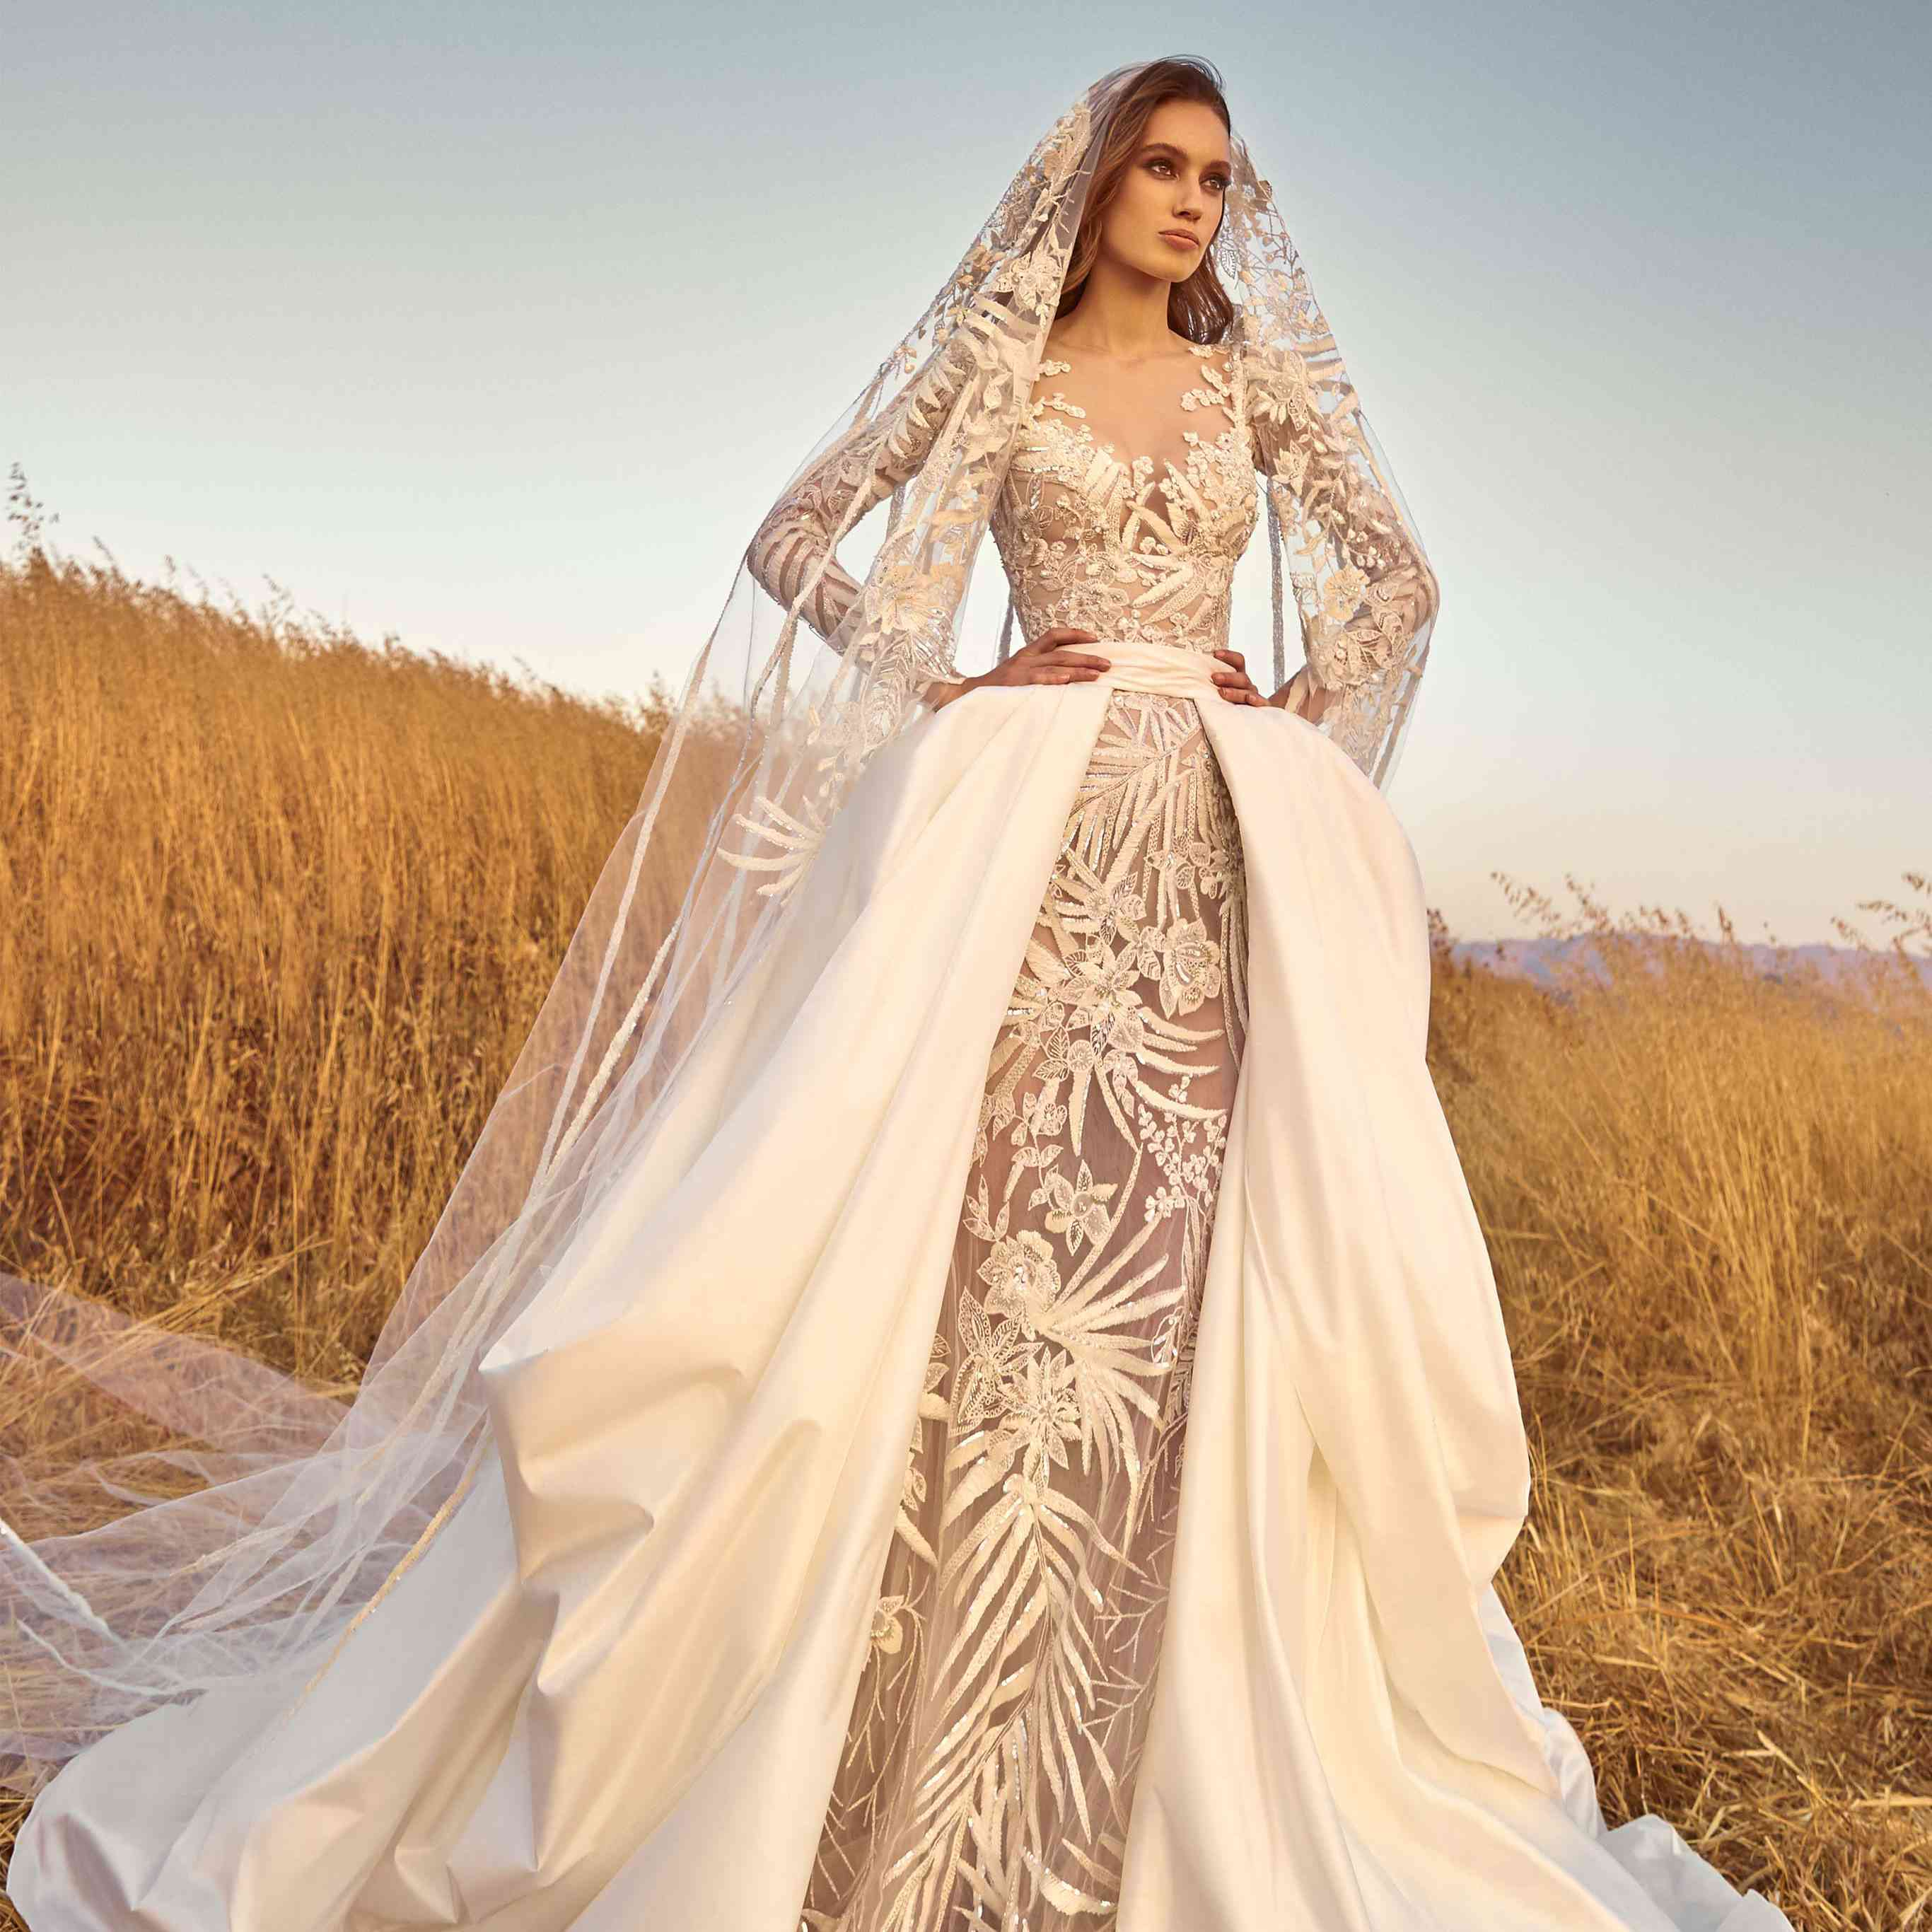 Zuhair Murad Bridal S Wedding Dress Collection Fall 2020